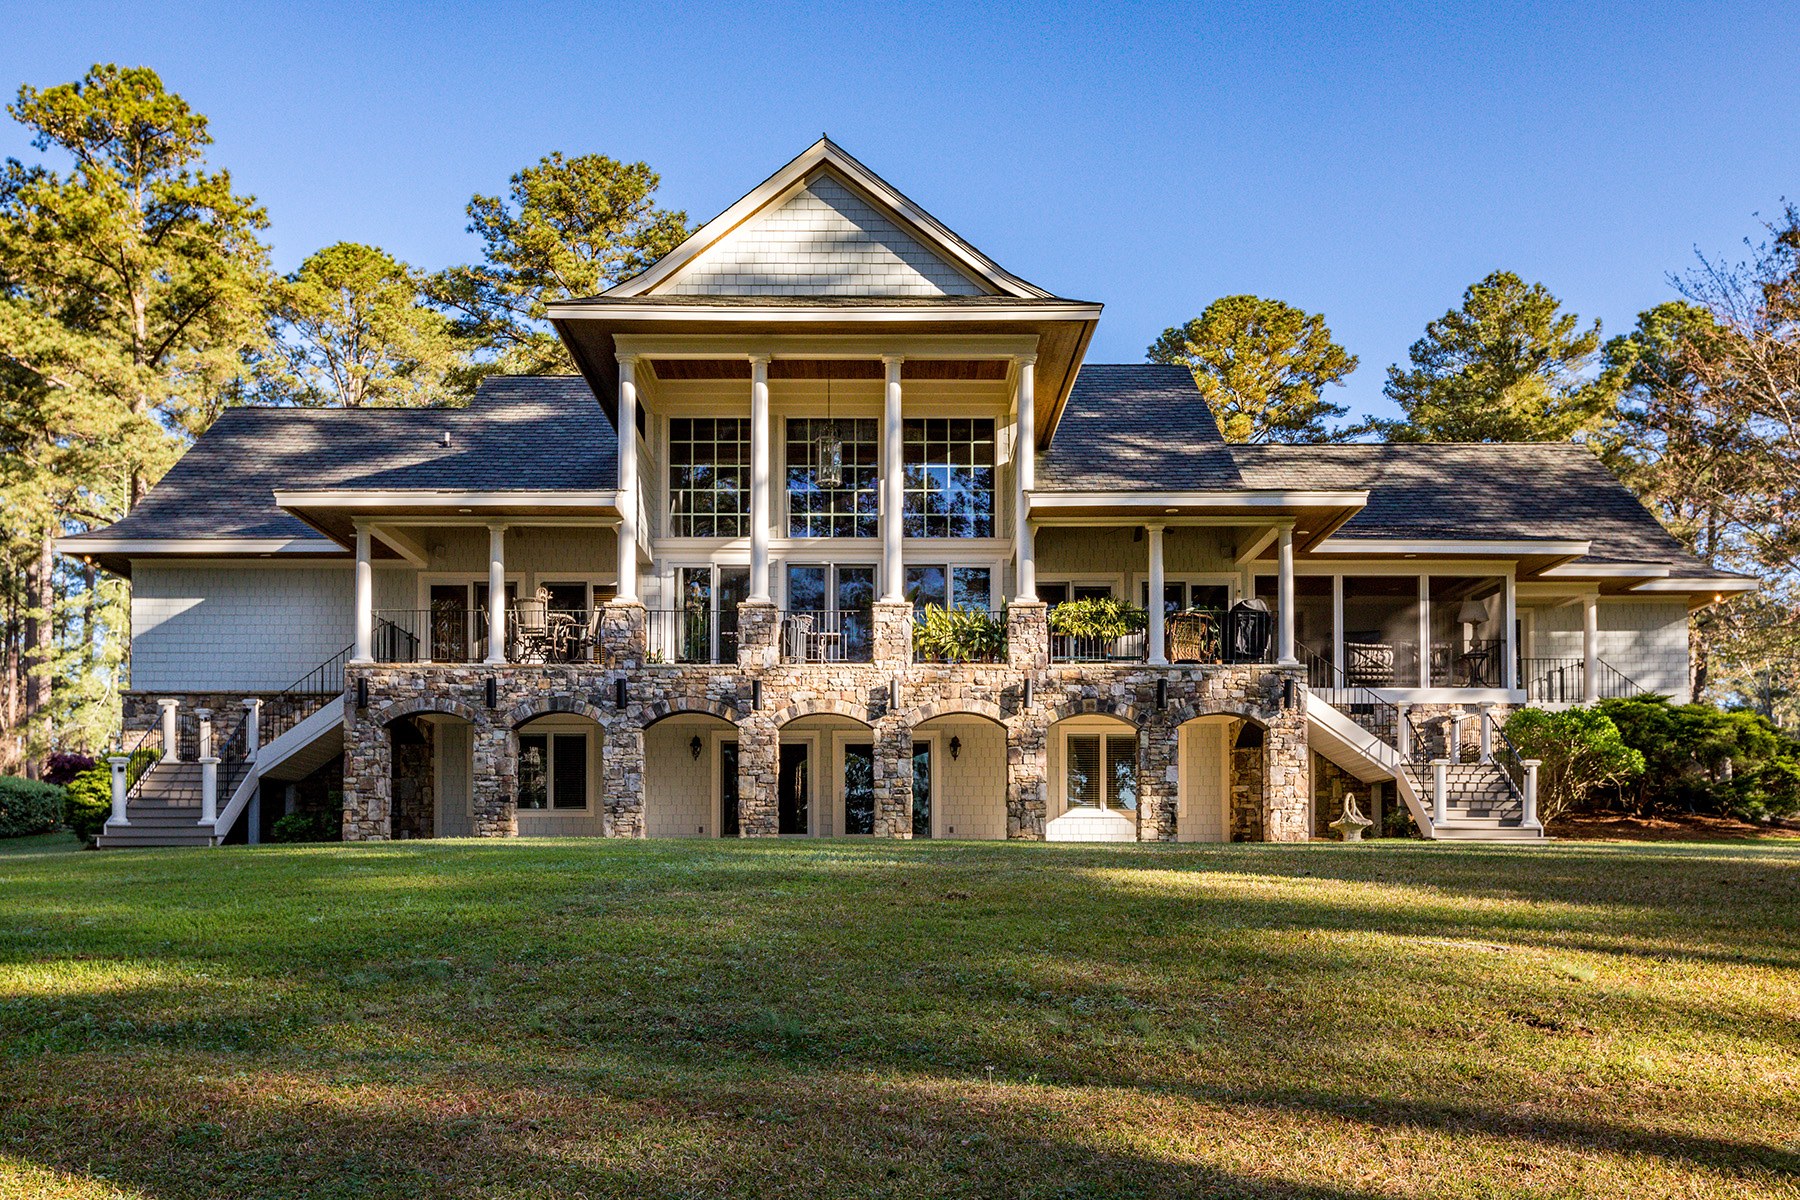 Single Family Homes por un Venta en Private, Gated Entry Prefaces Tree-Lined Drive With Rolling Pasture Views 52 Chigoe Lane, Appling, Georgia 30802 Estados Unidos